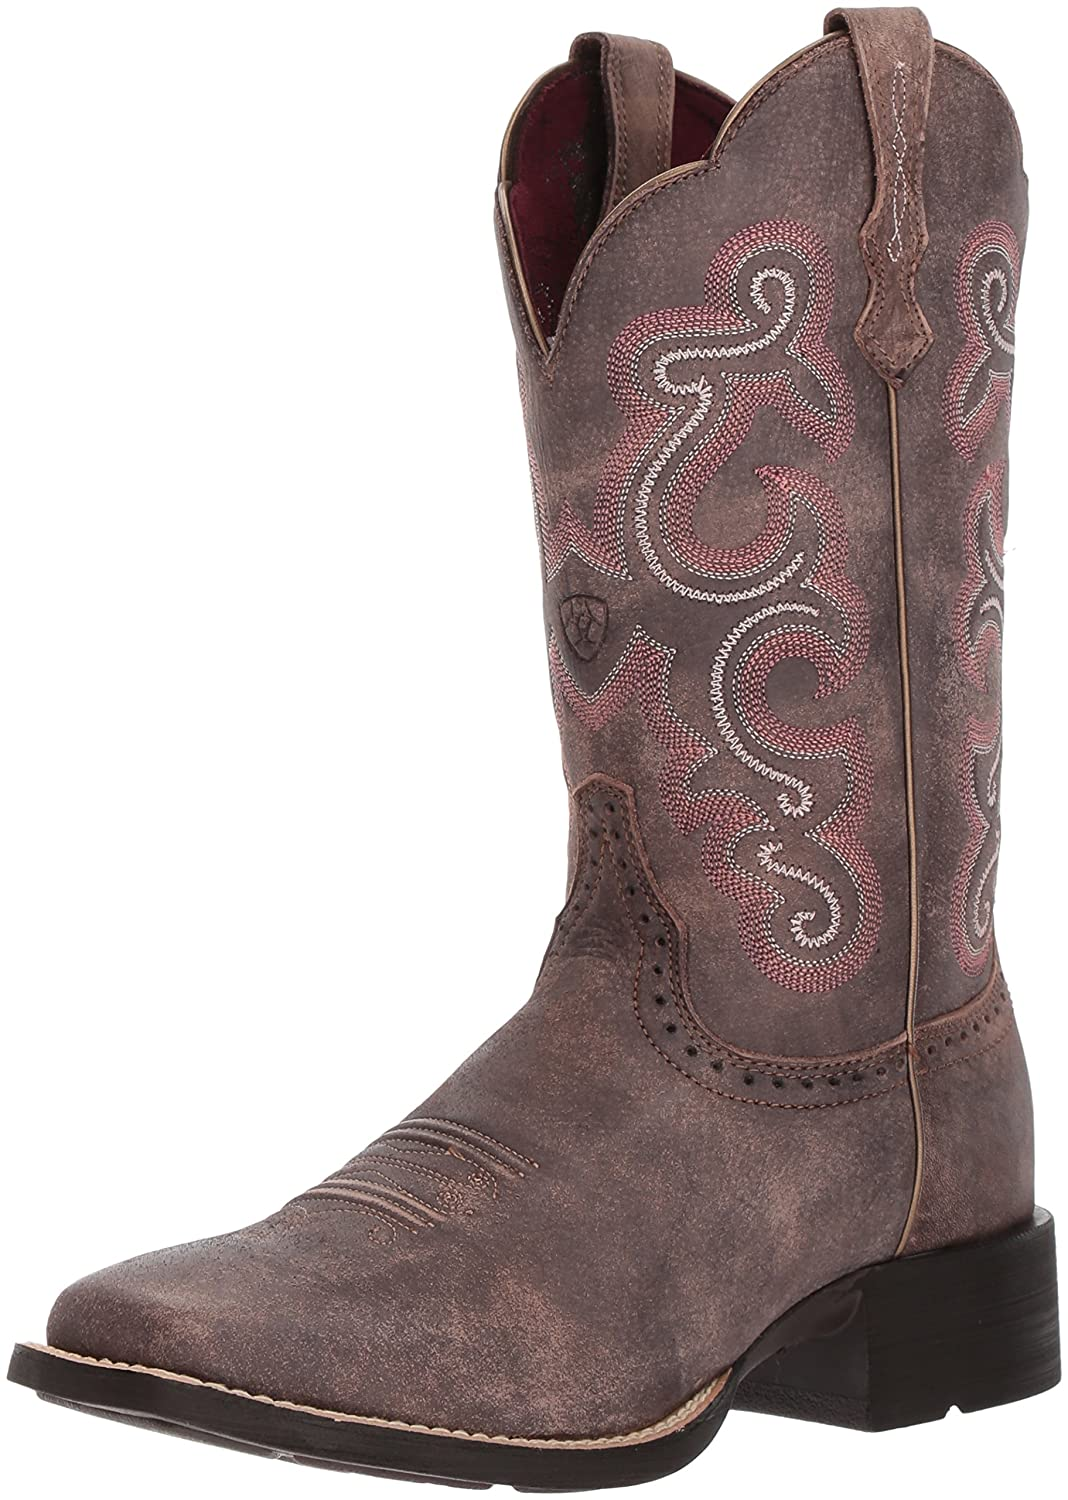 Tack Room Chocolate ARIAT Women's Quickdraw Western Boot